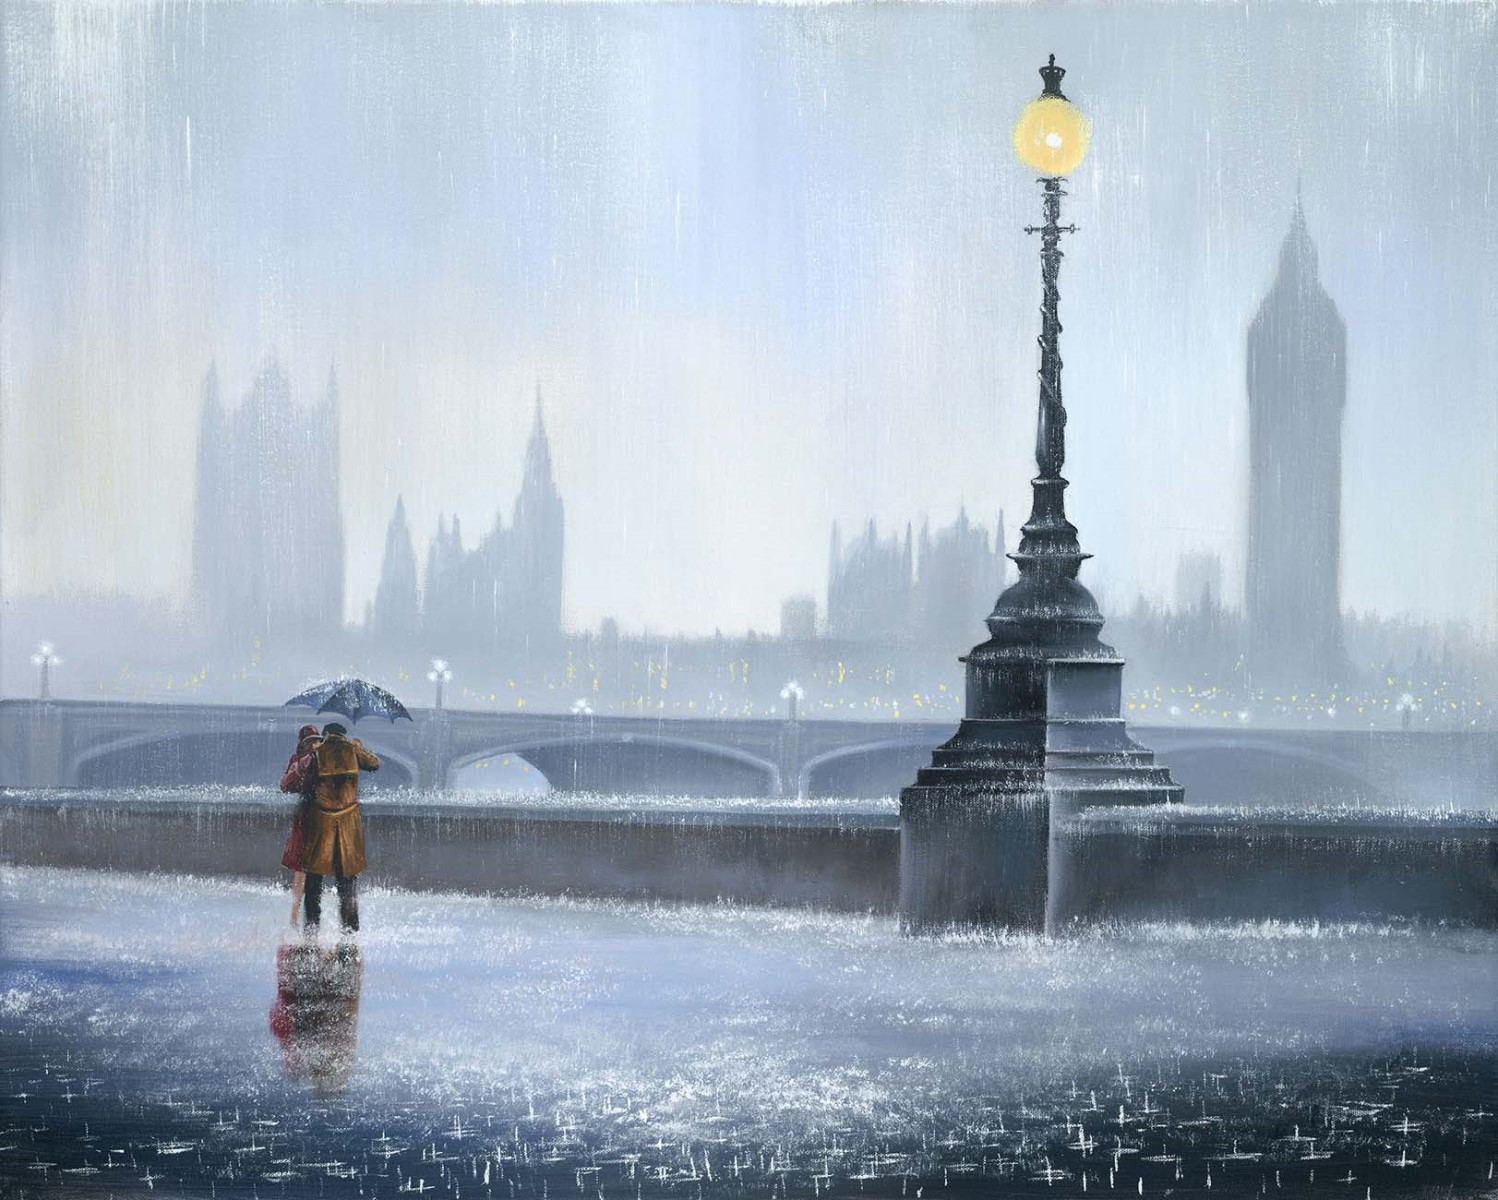 Falling in love again by Jeff Rowland, Rare | Couple | Love | Romance | Nostalgic | Water